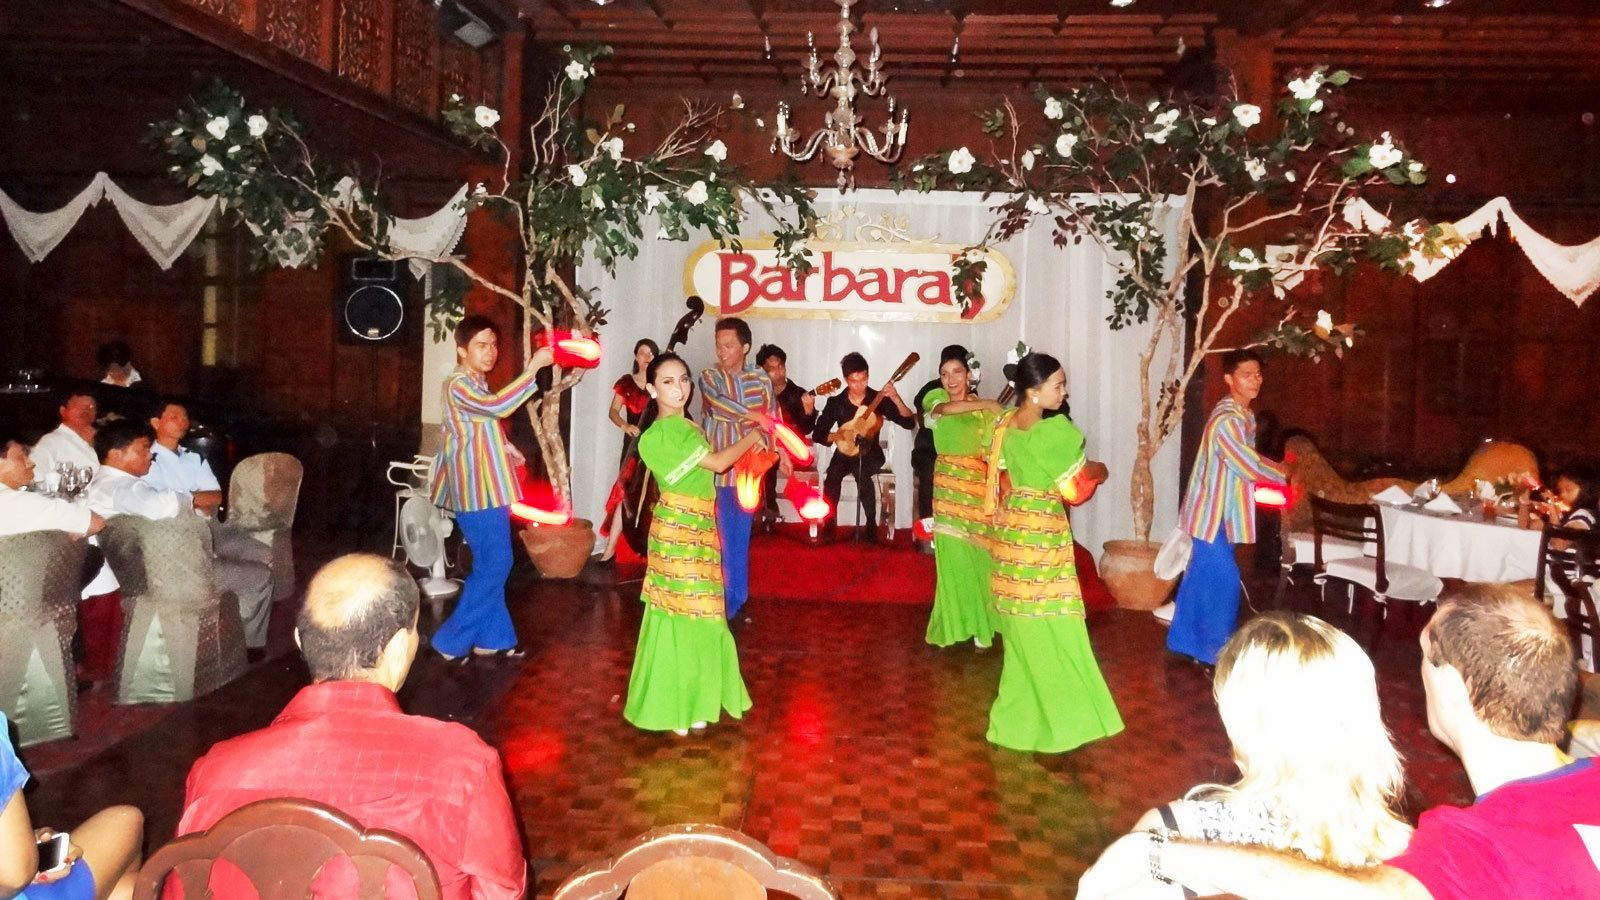 Private Evening Tour of Old Manila with Cultural Dance Performance & Dinner